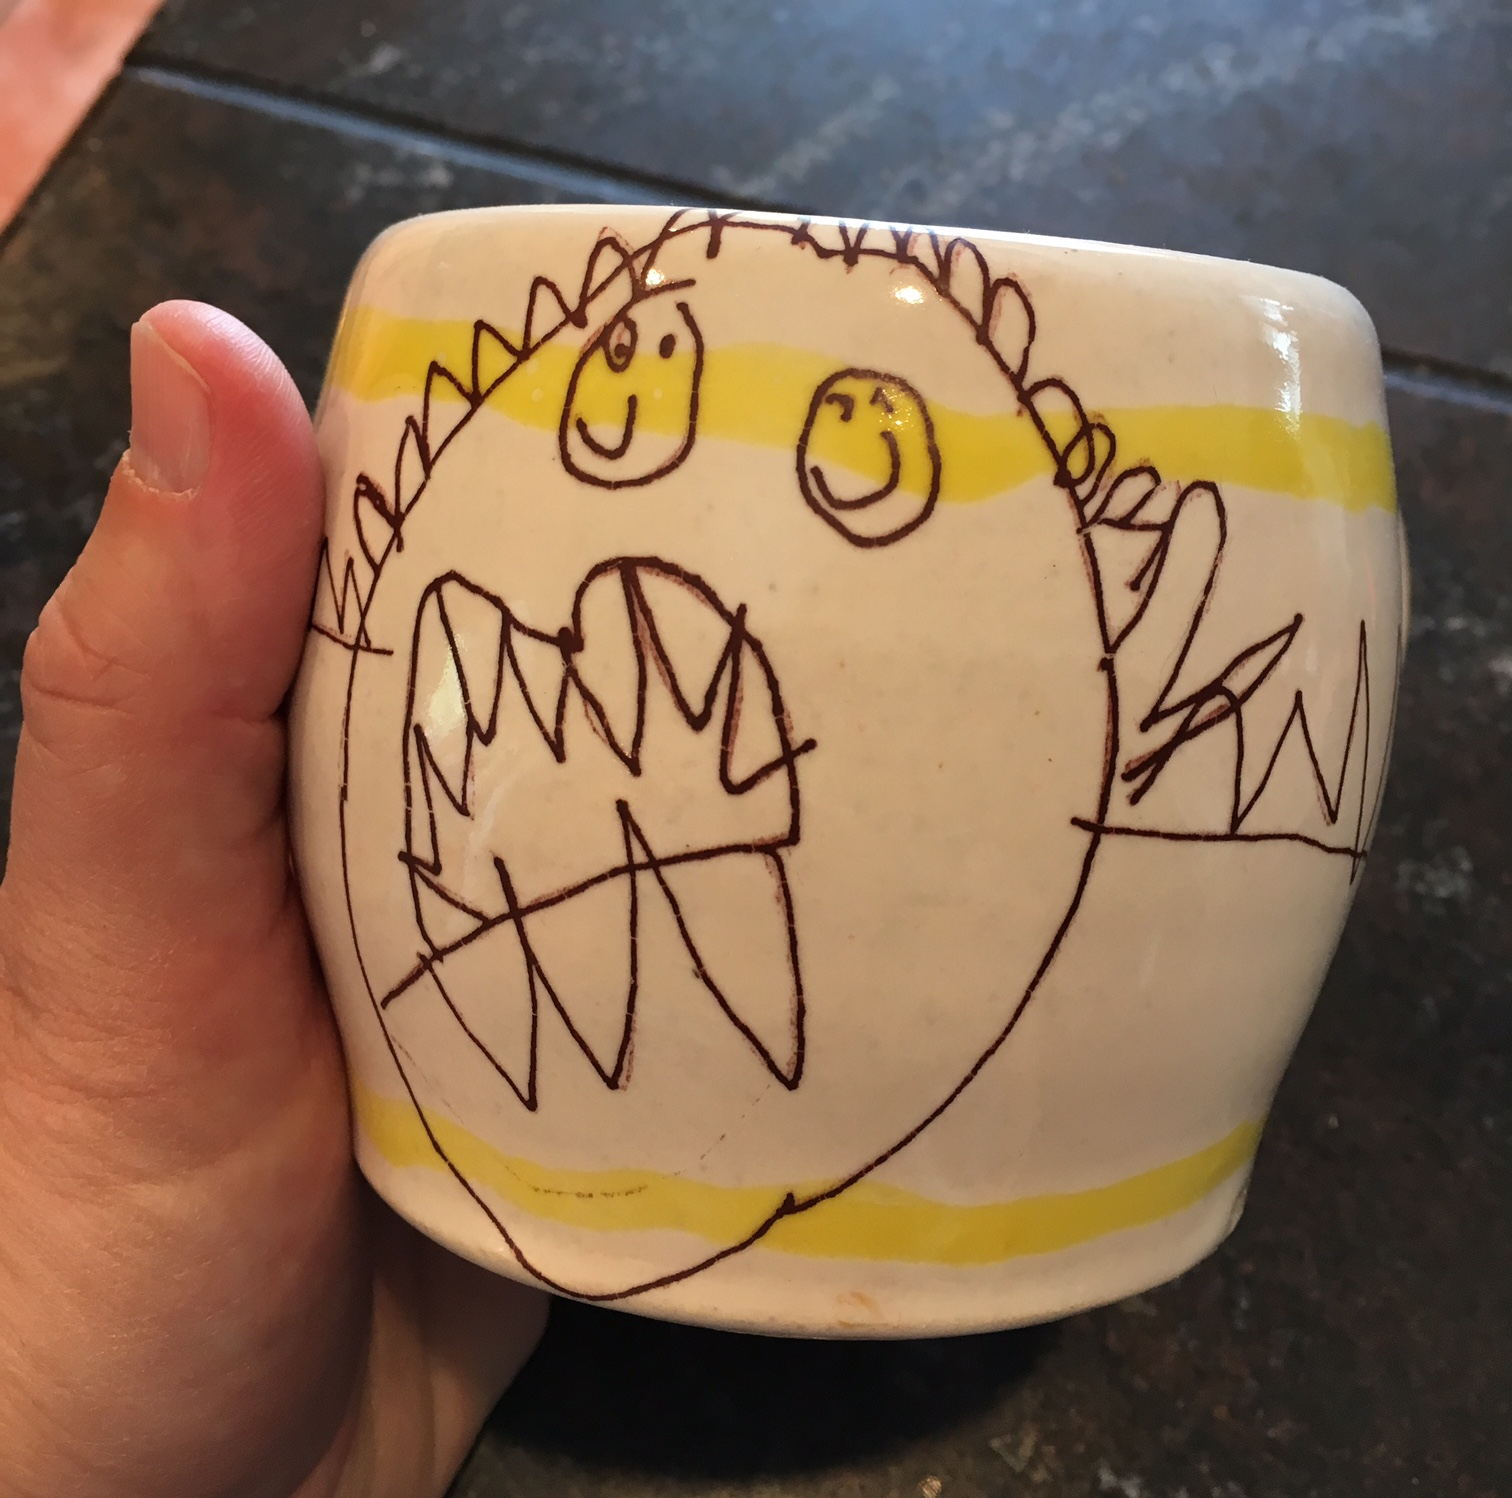 An example of a kid's drawing converted into a decal (food,  dishwasher, microwave safe) and fired onto a pottery mug.